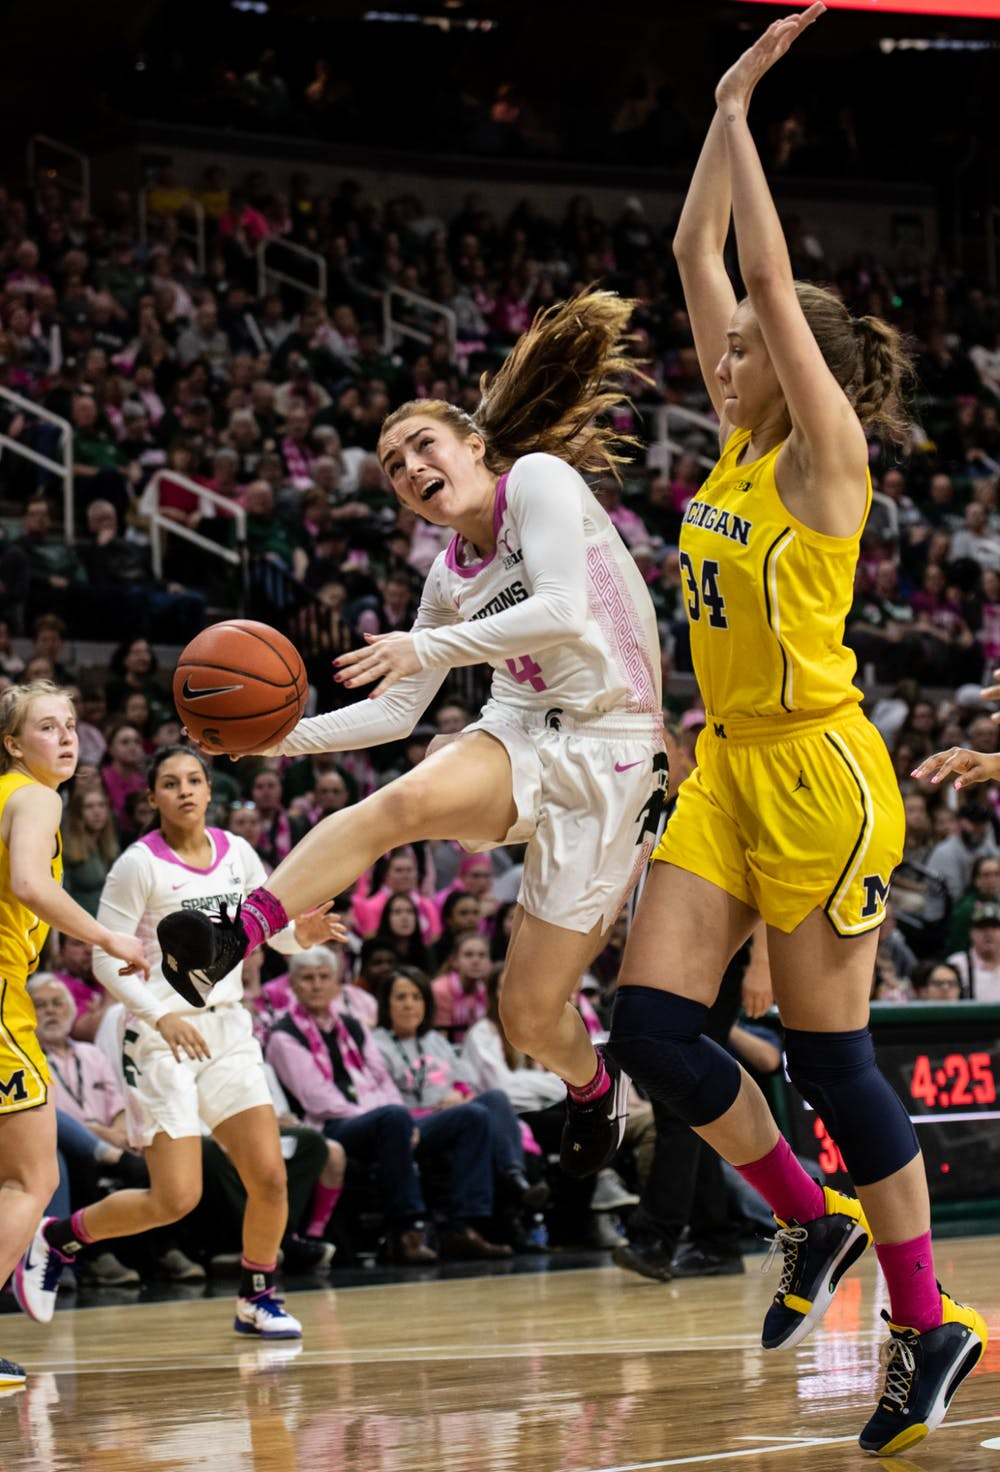 Senior guard Taryn McCutcheon (4) takes a shot during a basketball game against Michigan on Feb. 23, 2020.